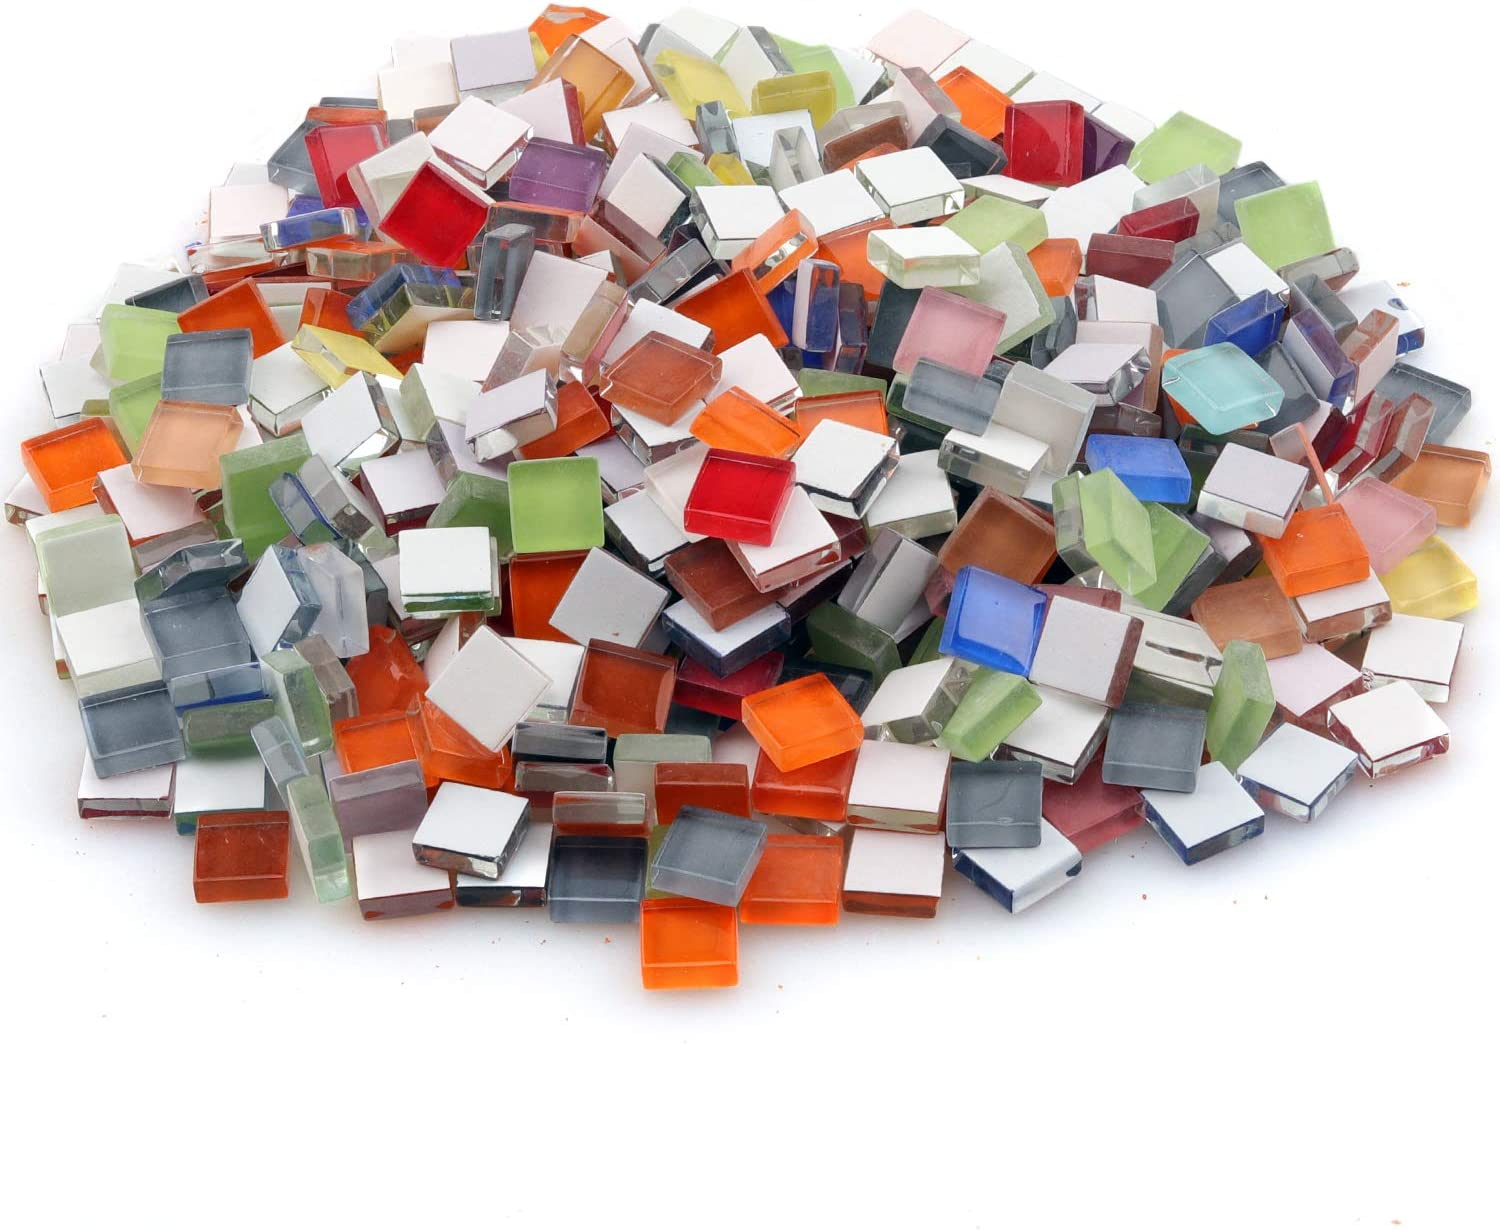 Glass Mosaic Tiles,1000 Pieces Mixed Color Mosaic Glass Pieces for Art Crafts Mosaic Projects DIY Children Puzzle Handmade Materials Home Decor (Crystal Diamond)